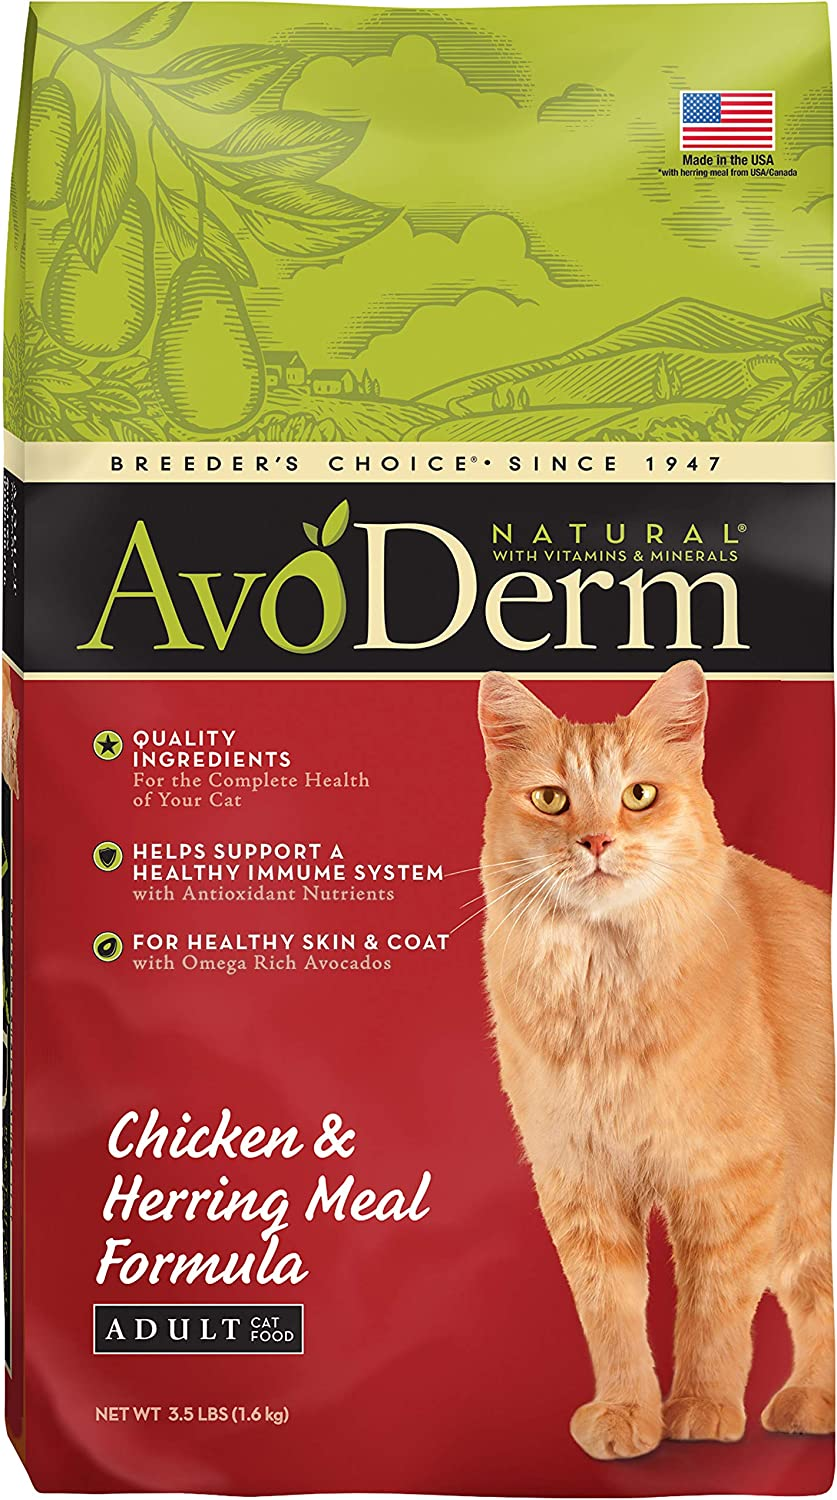 Avoderm Natural Chicken & Herring Meal Formula Dry Cat Food, 3.5-Pound